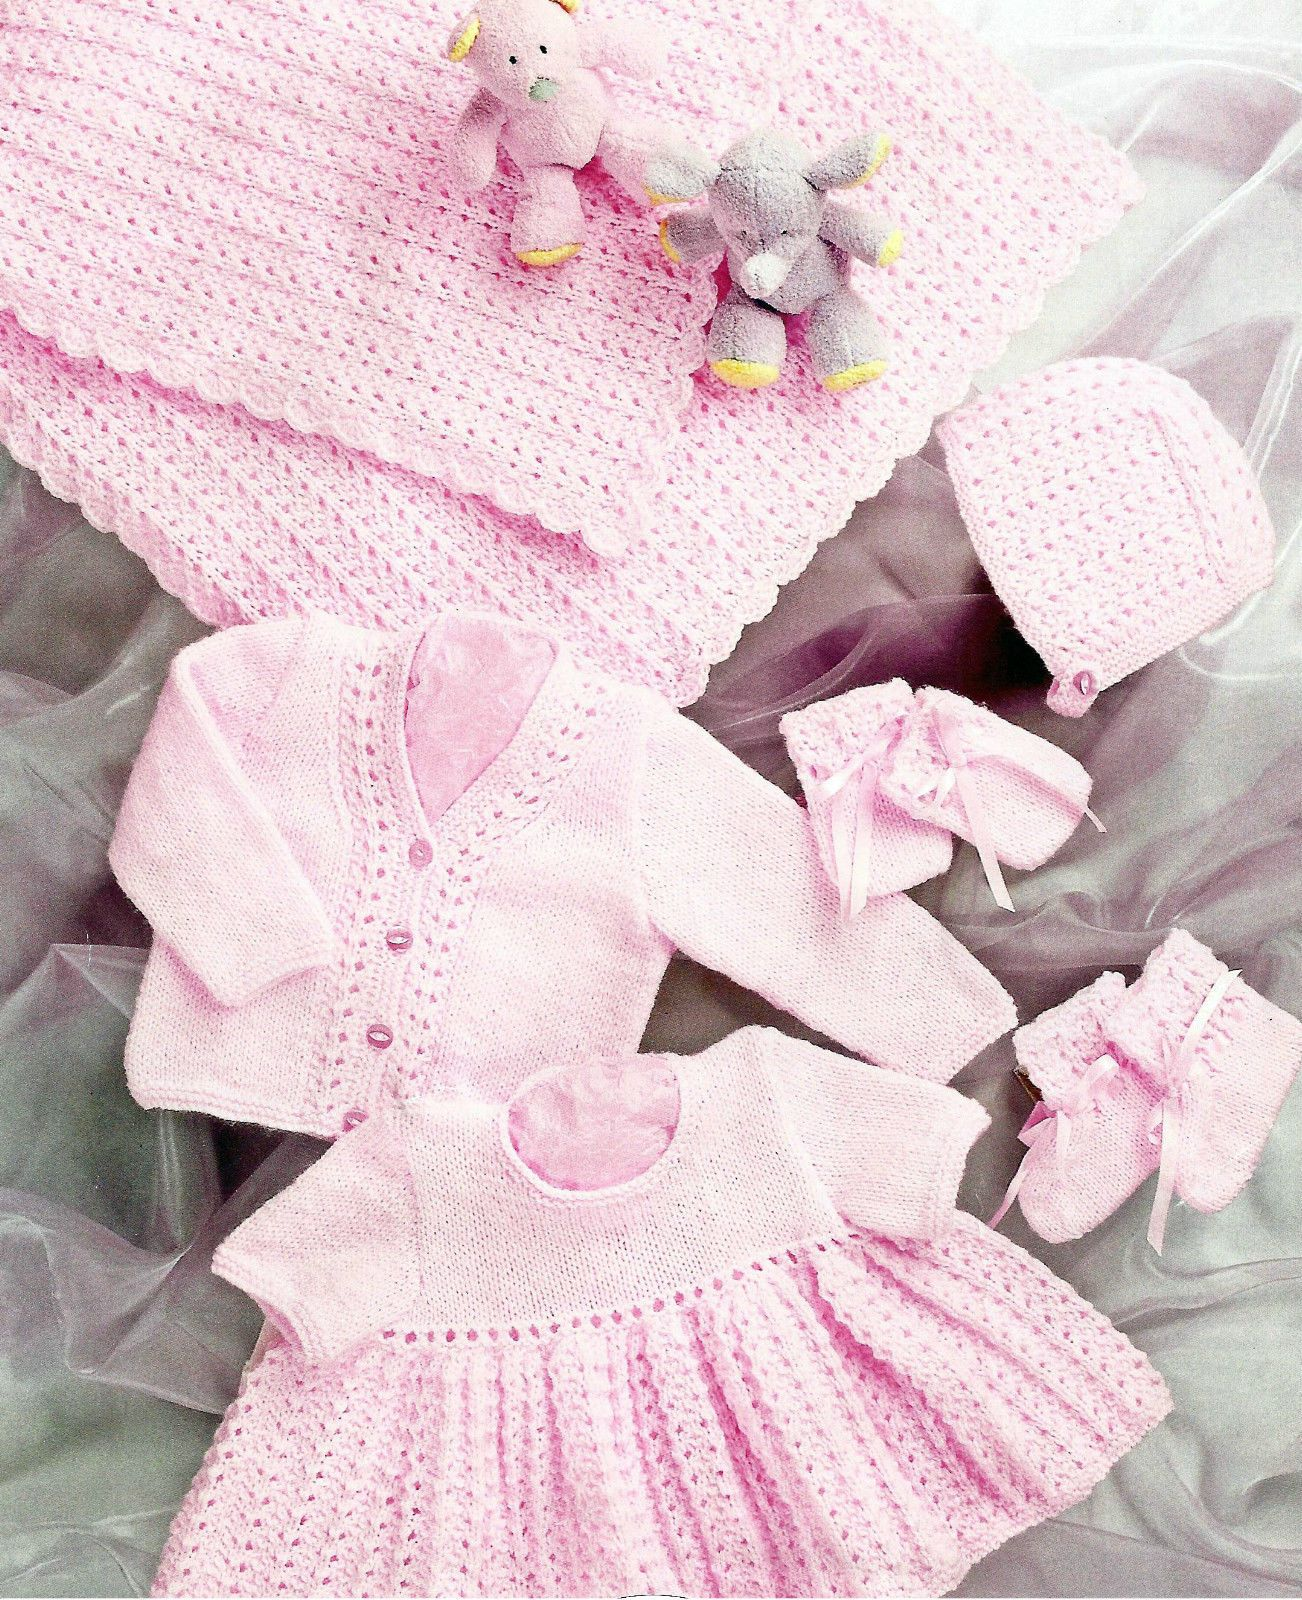 Baby or doll vintage knitting pattern 6 sizes premature 12 22 1 of 1 premature baby or doll knitting pattern 12 to 20 inch 519 bankloansurffo Image collections